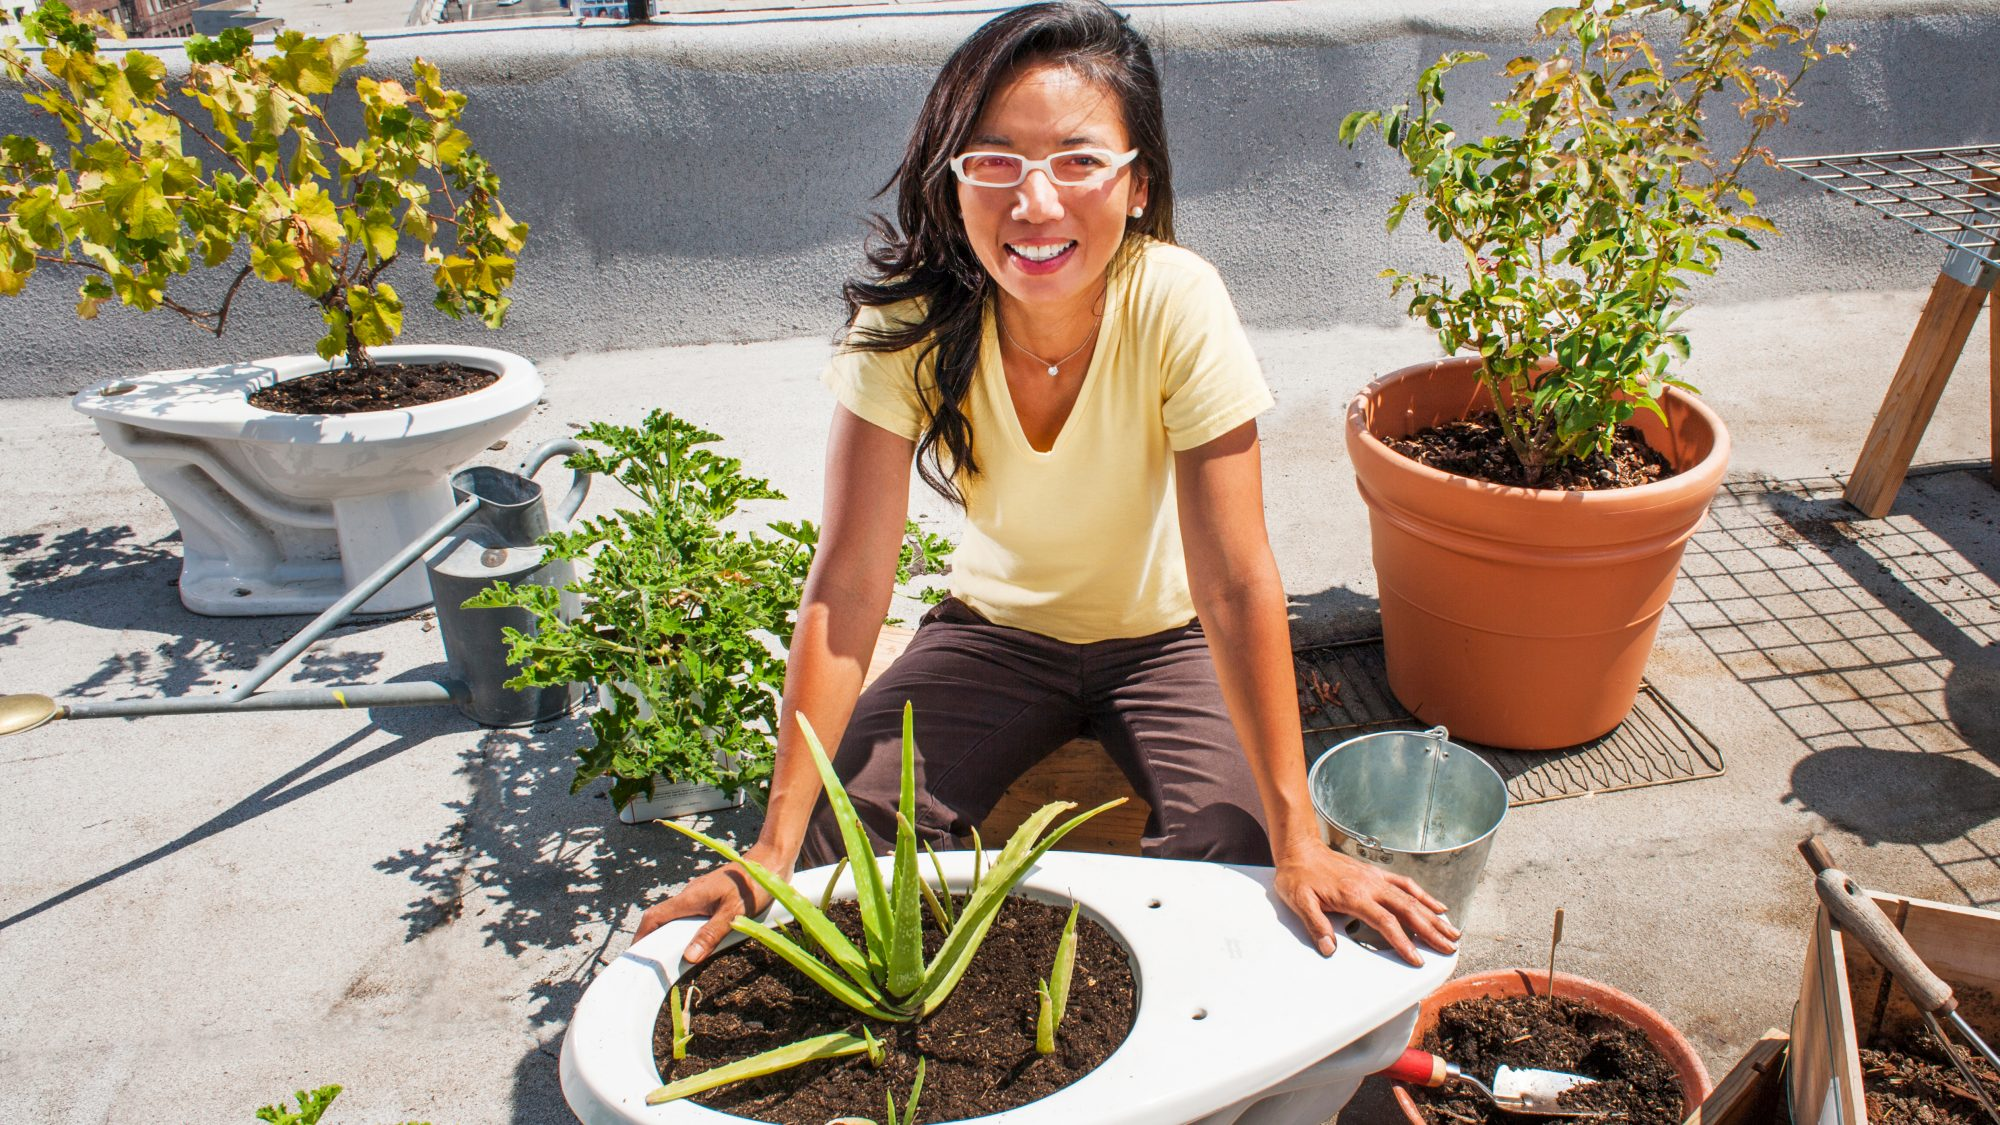 Woman working on container garden project outside